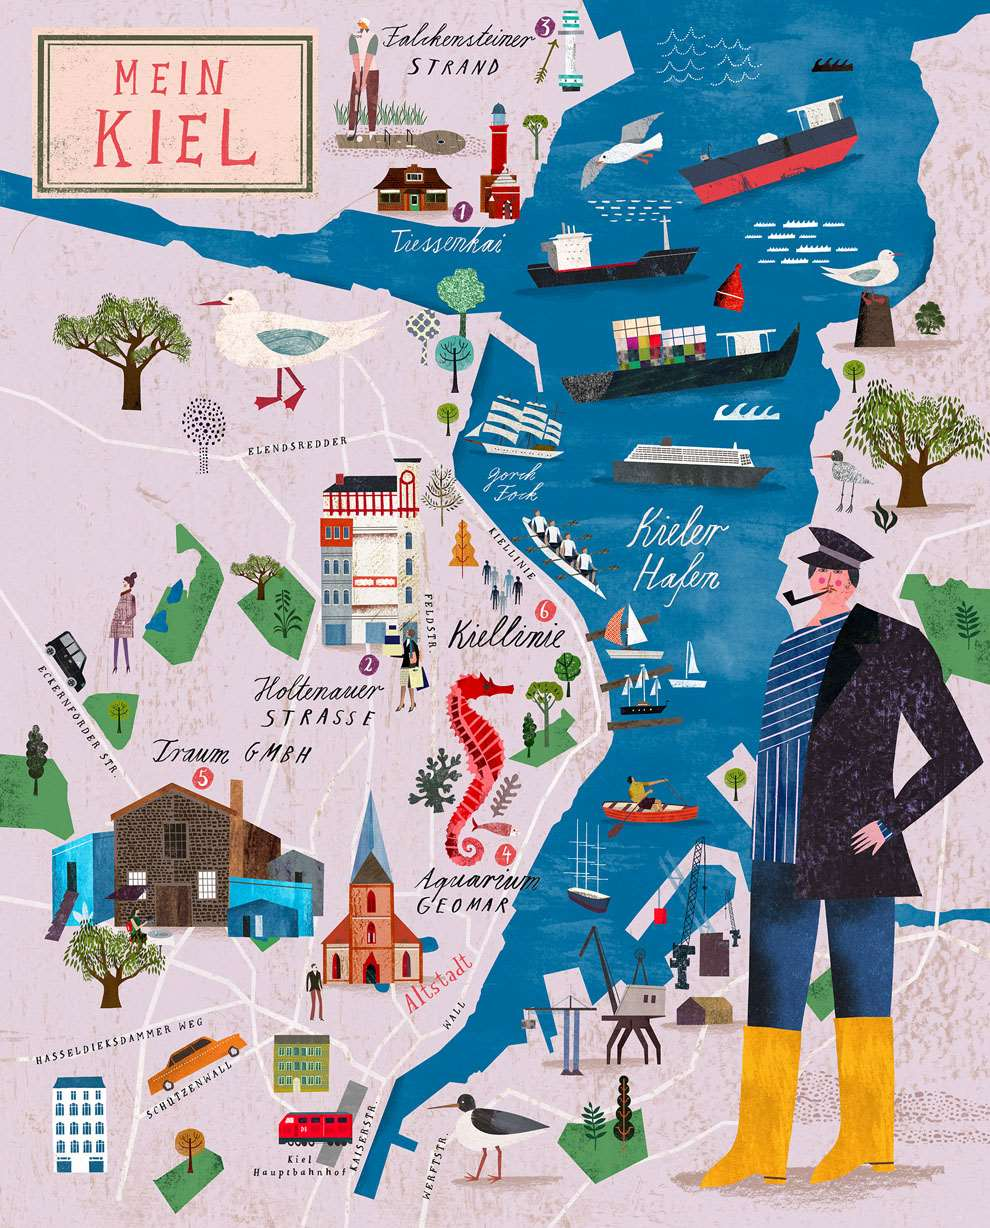 Martin Haake, Mix media layered map illustration of Main Kiehl, playful characters and detailed collaged landmarks.